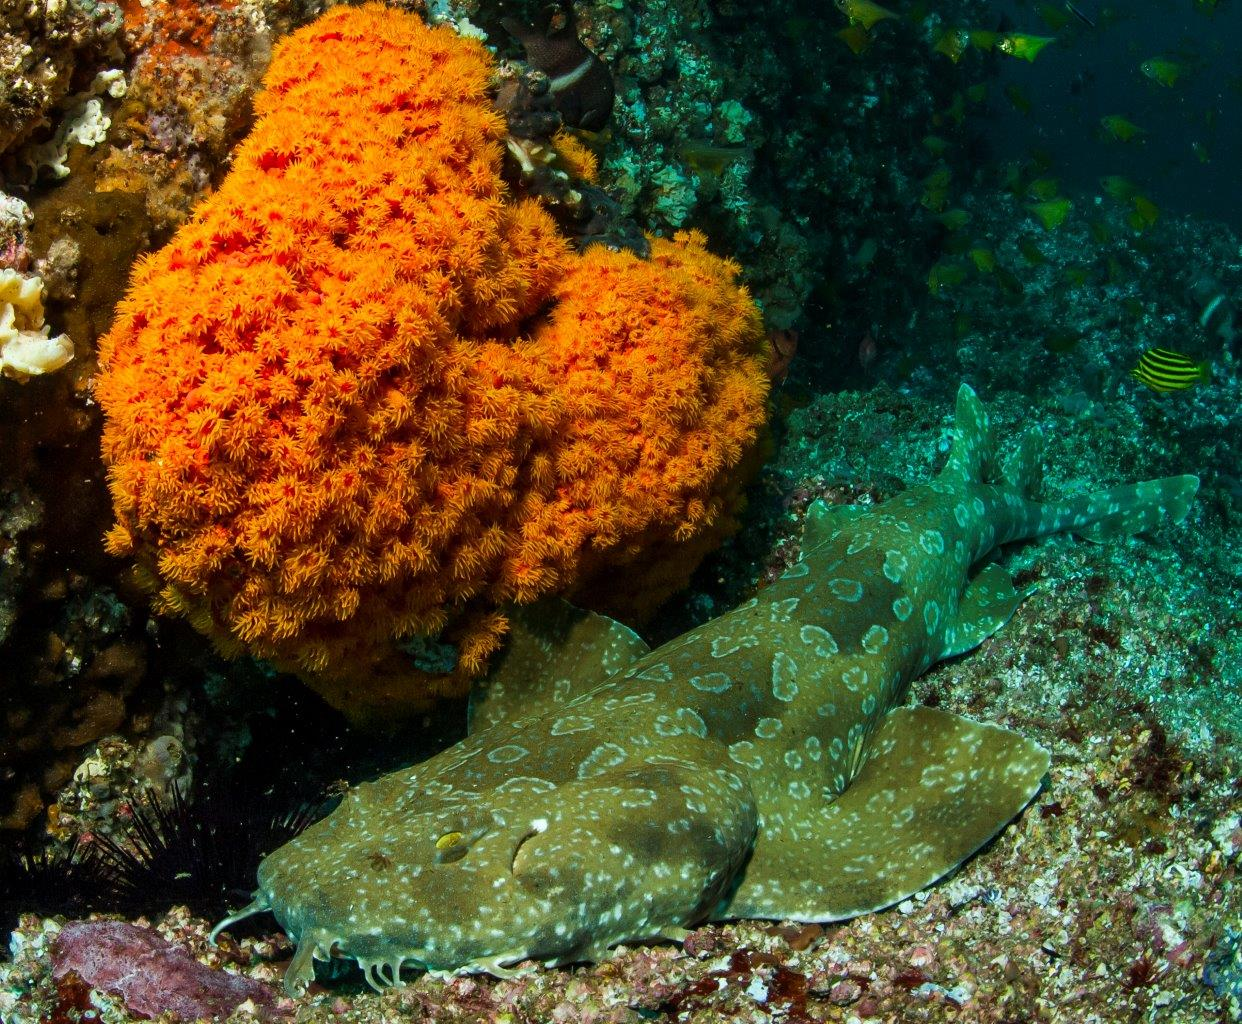 Spotted Wobbegongs can be found all around Fish Rock Cave